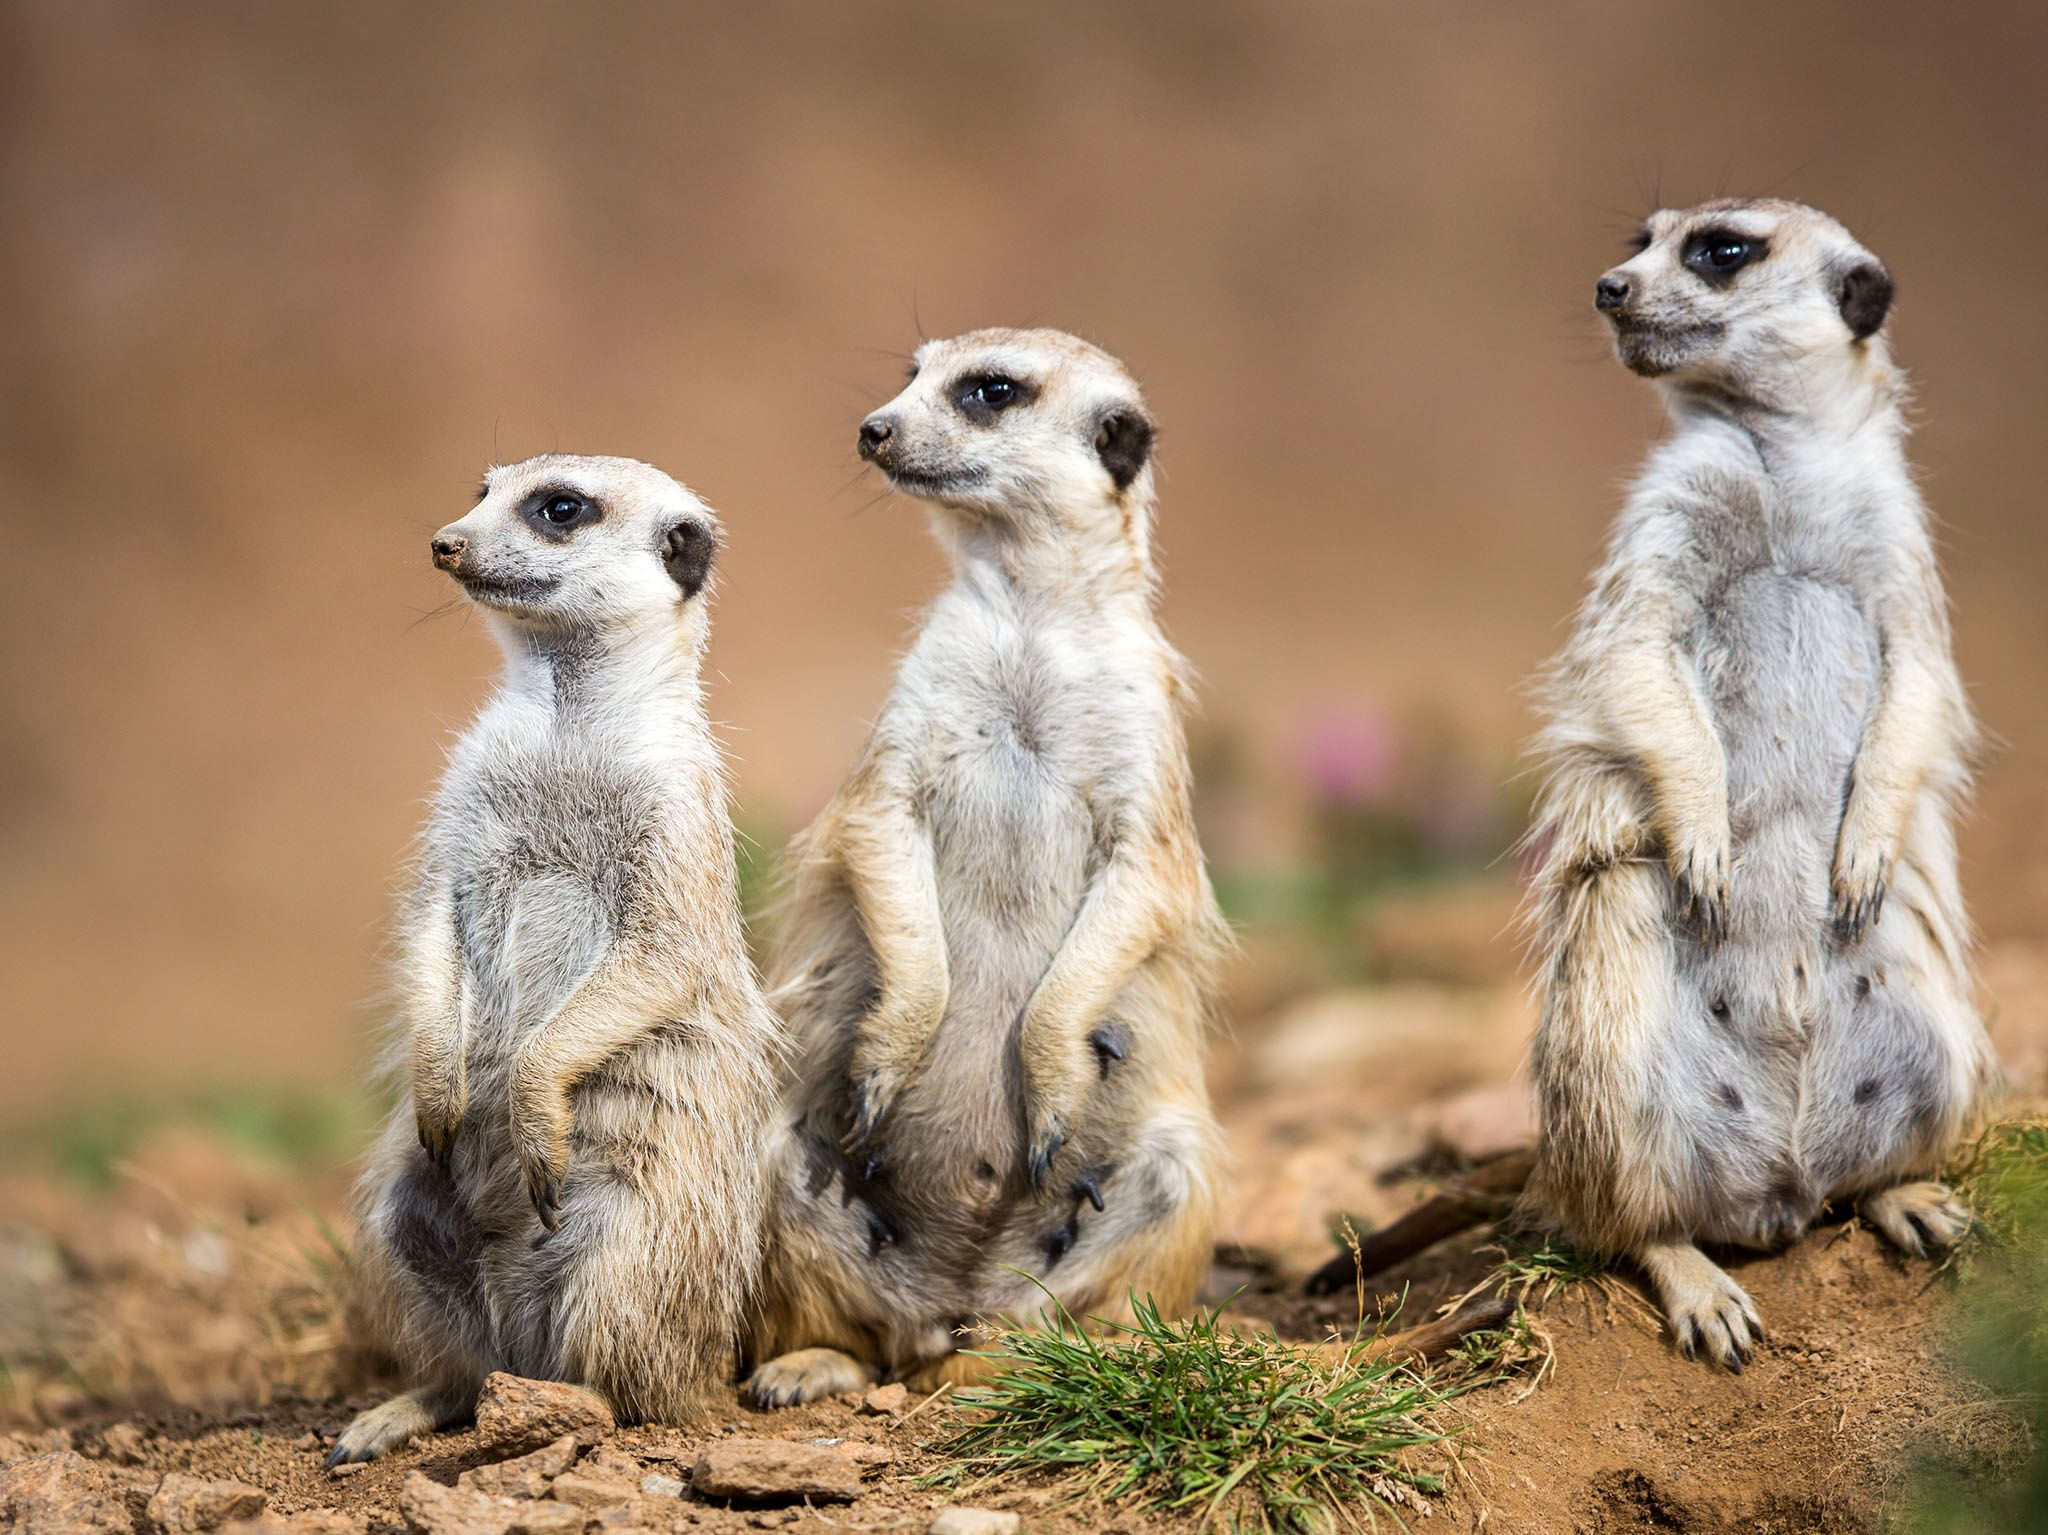 South Africa: Watchful meerkats standing guard. This image is from Survive The Wild. [Photo of the day - June 2017]